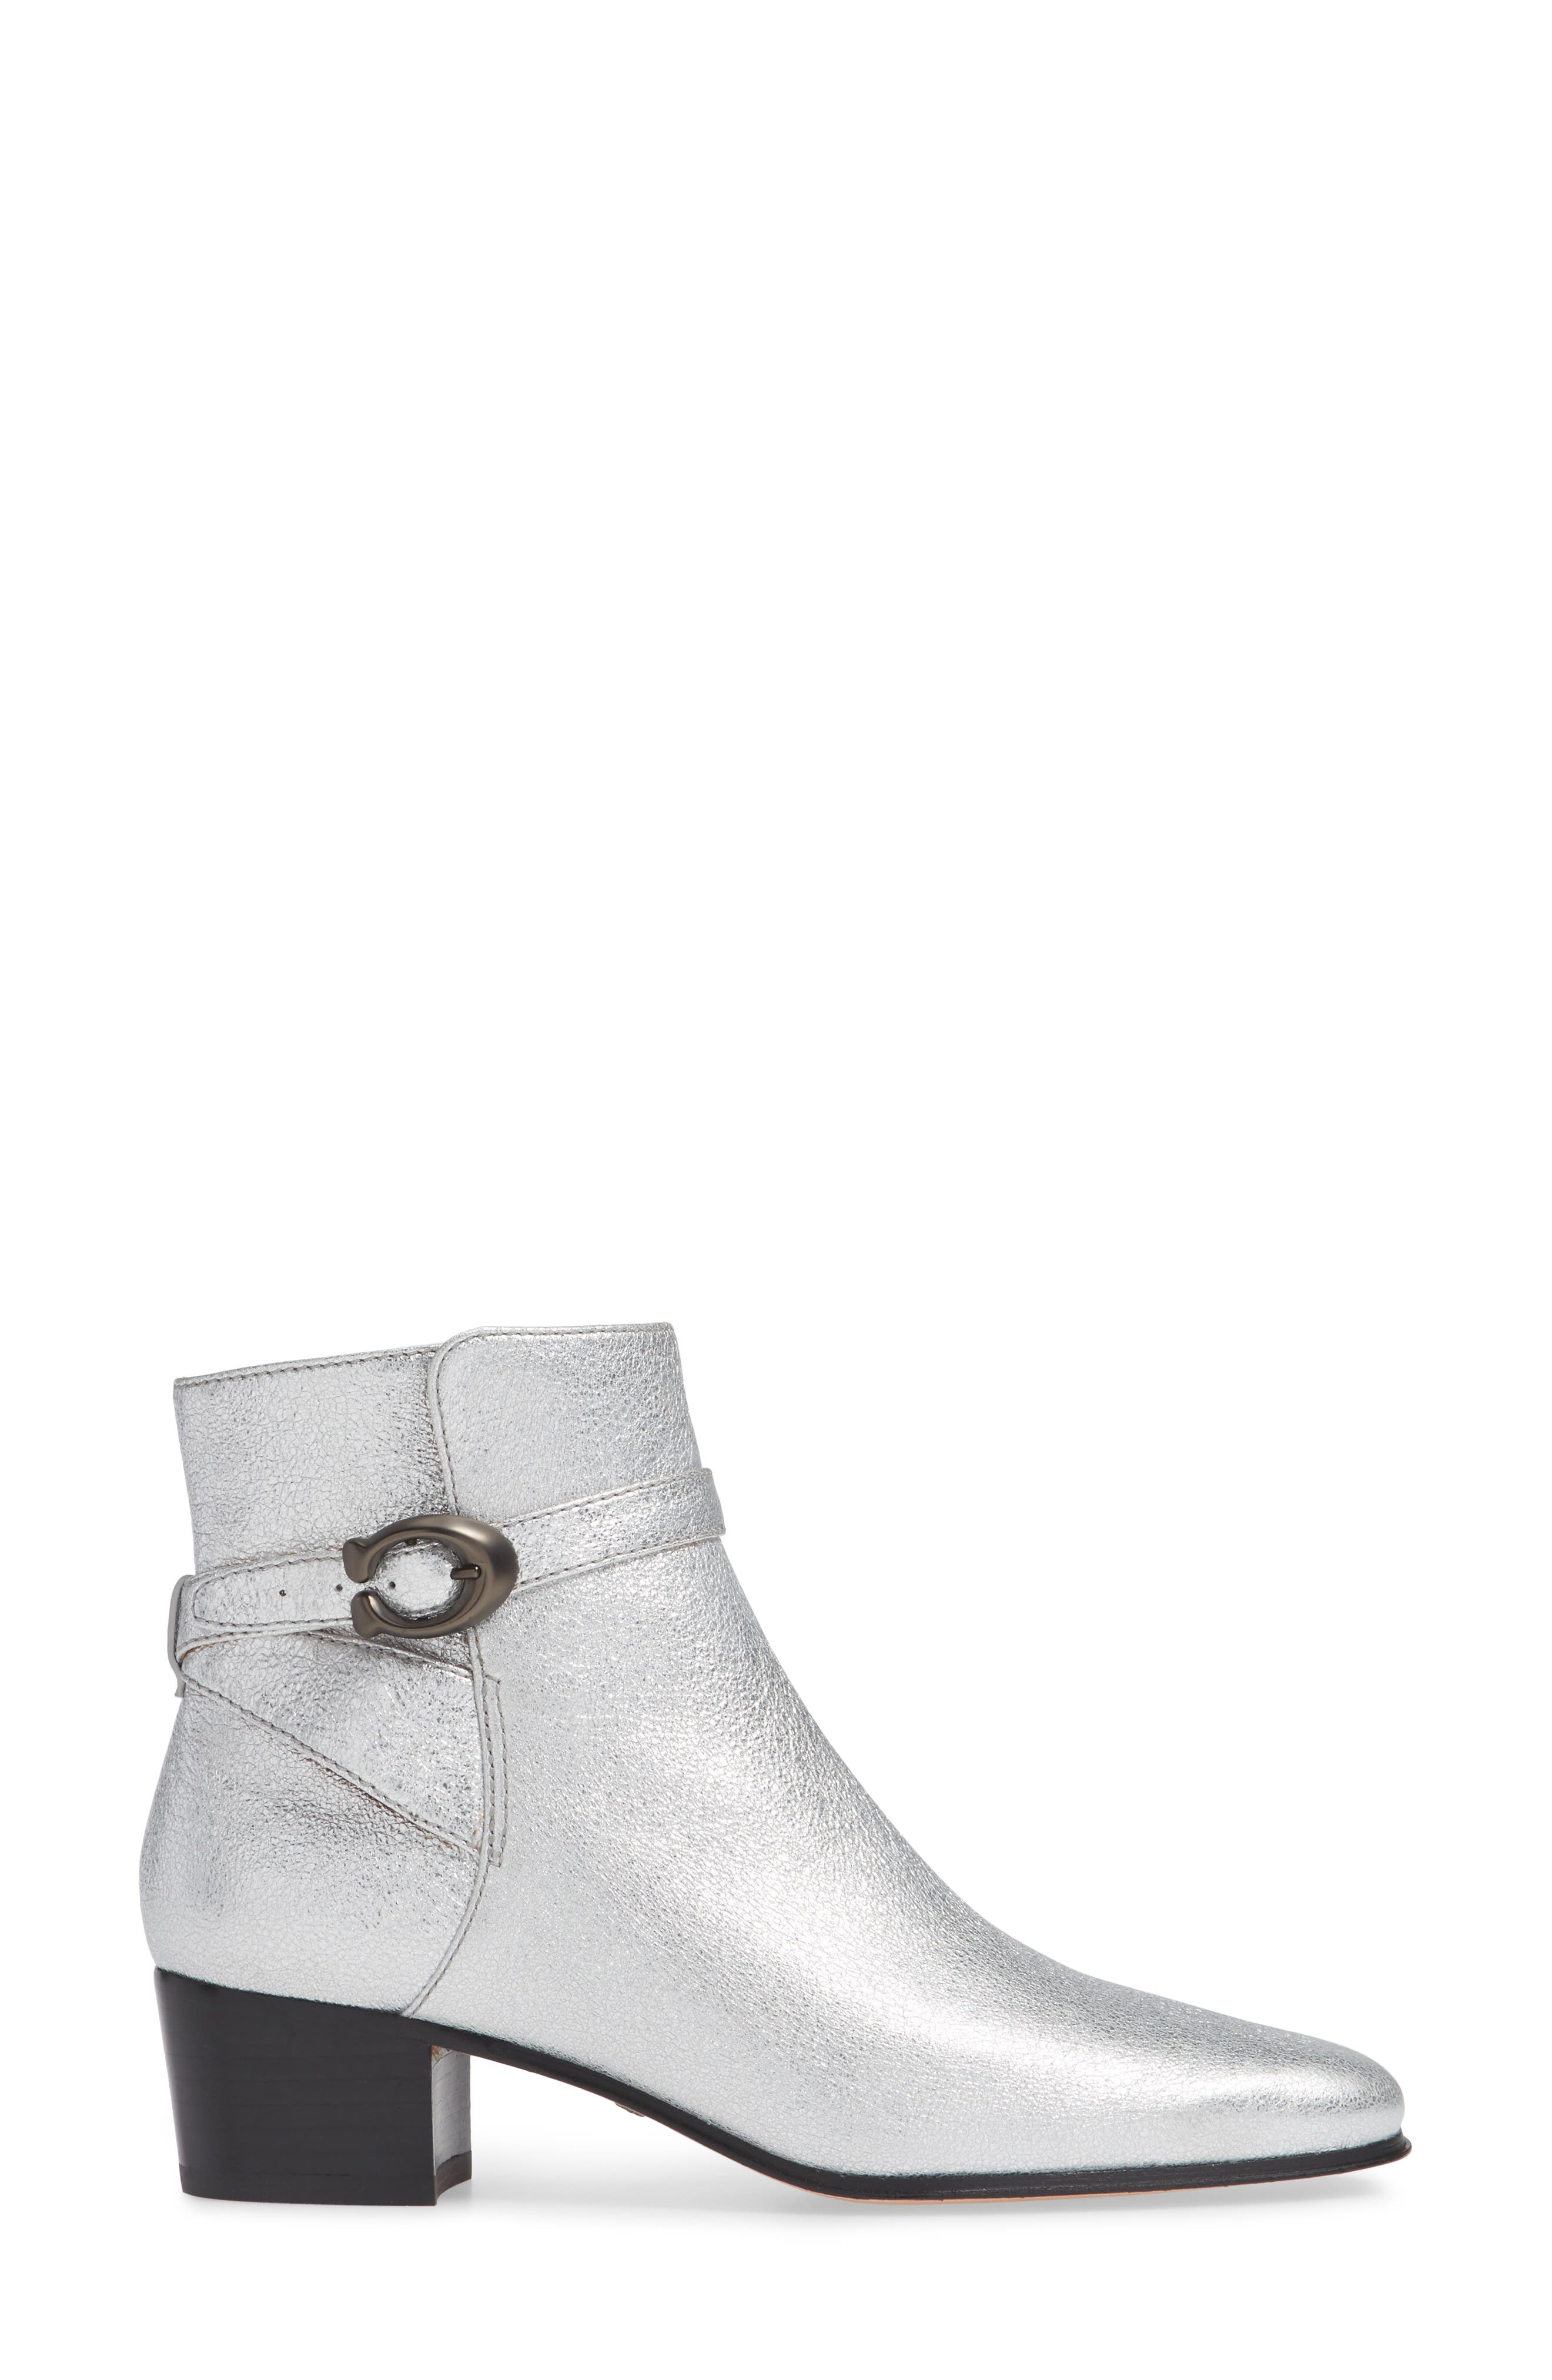 Chrystie Bootie,                             Alternate thumbnail 3, color,                             SILVER LEATHER